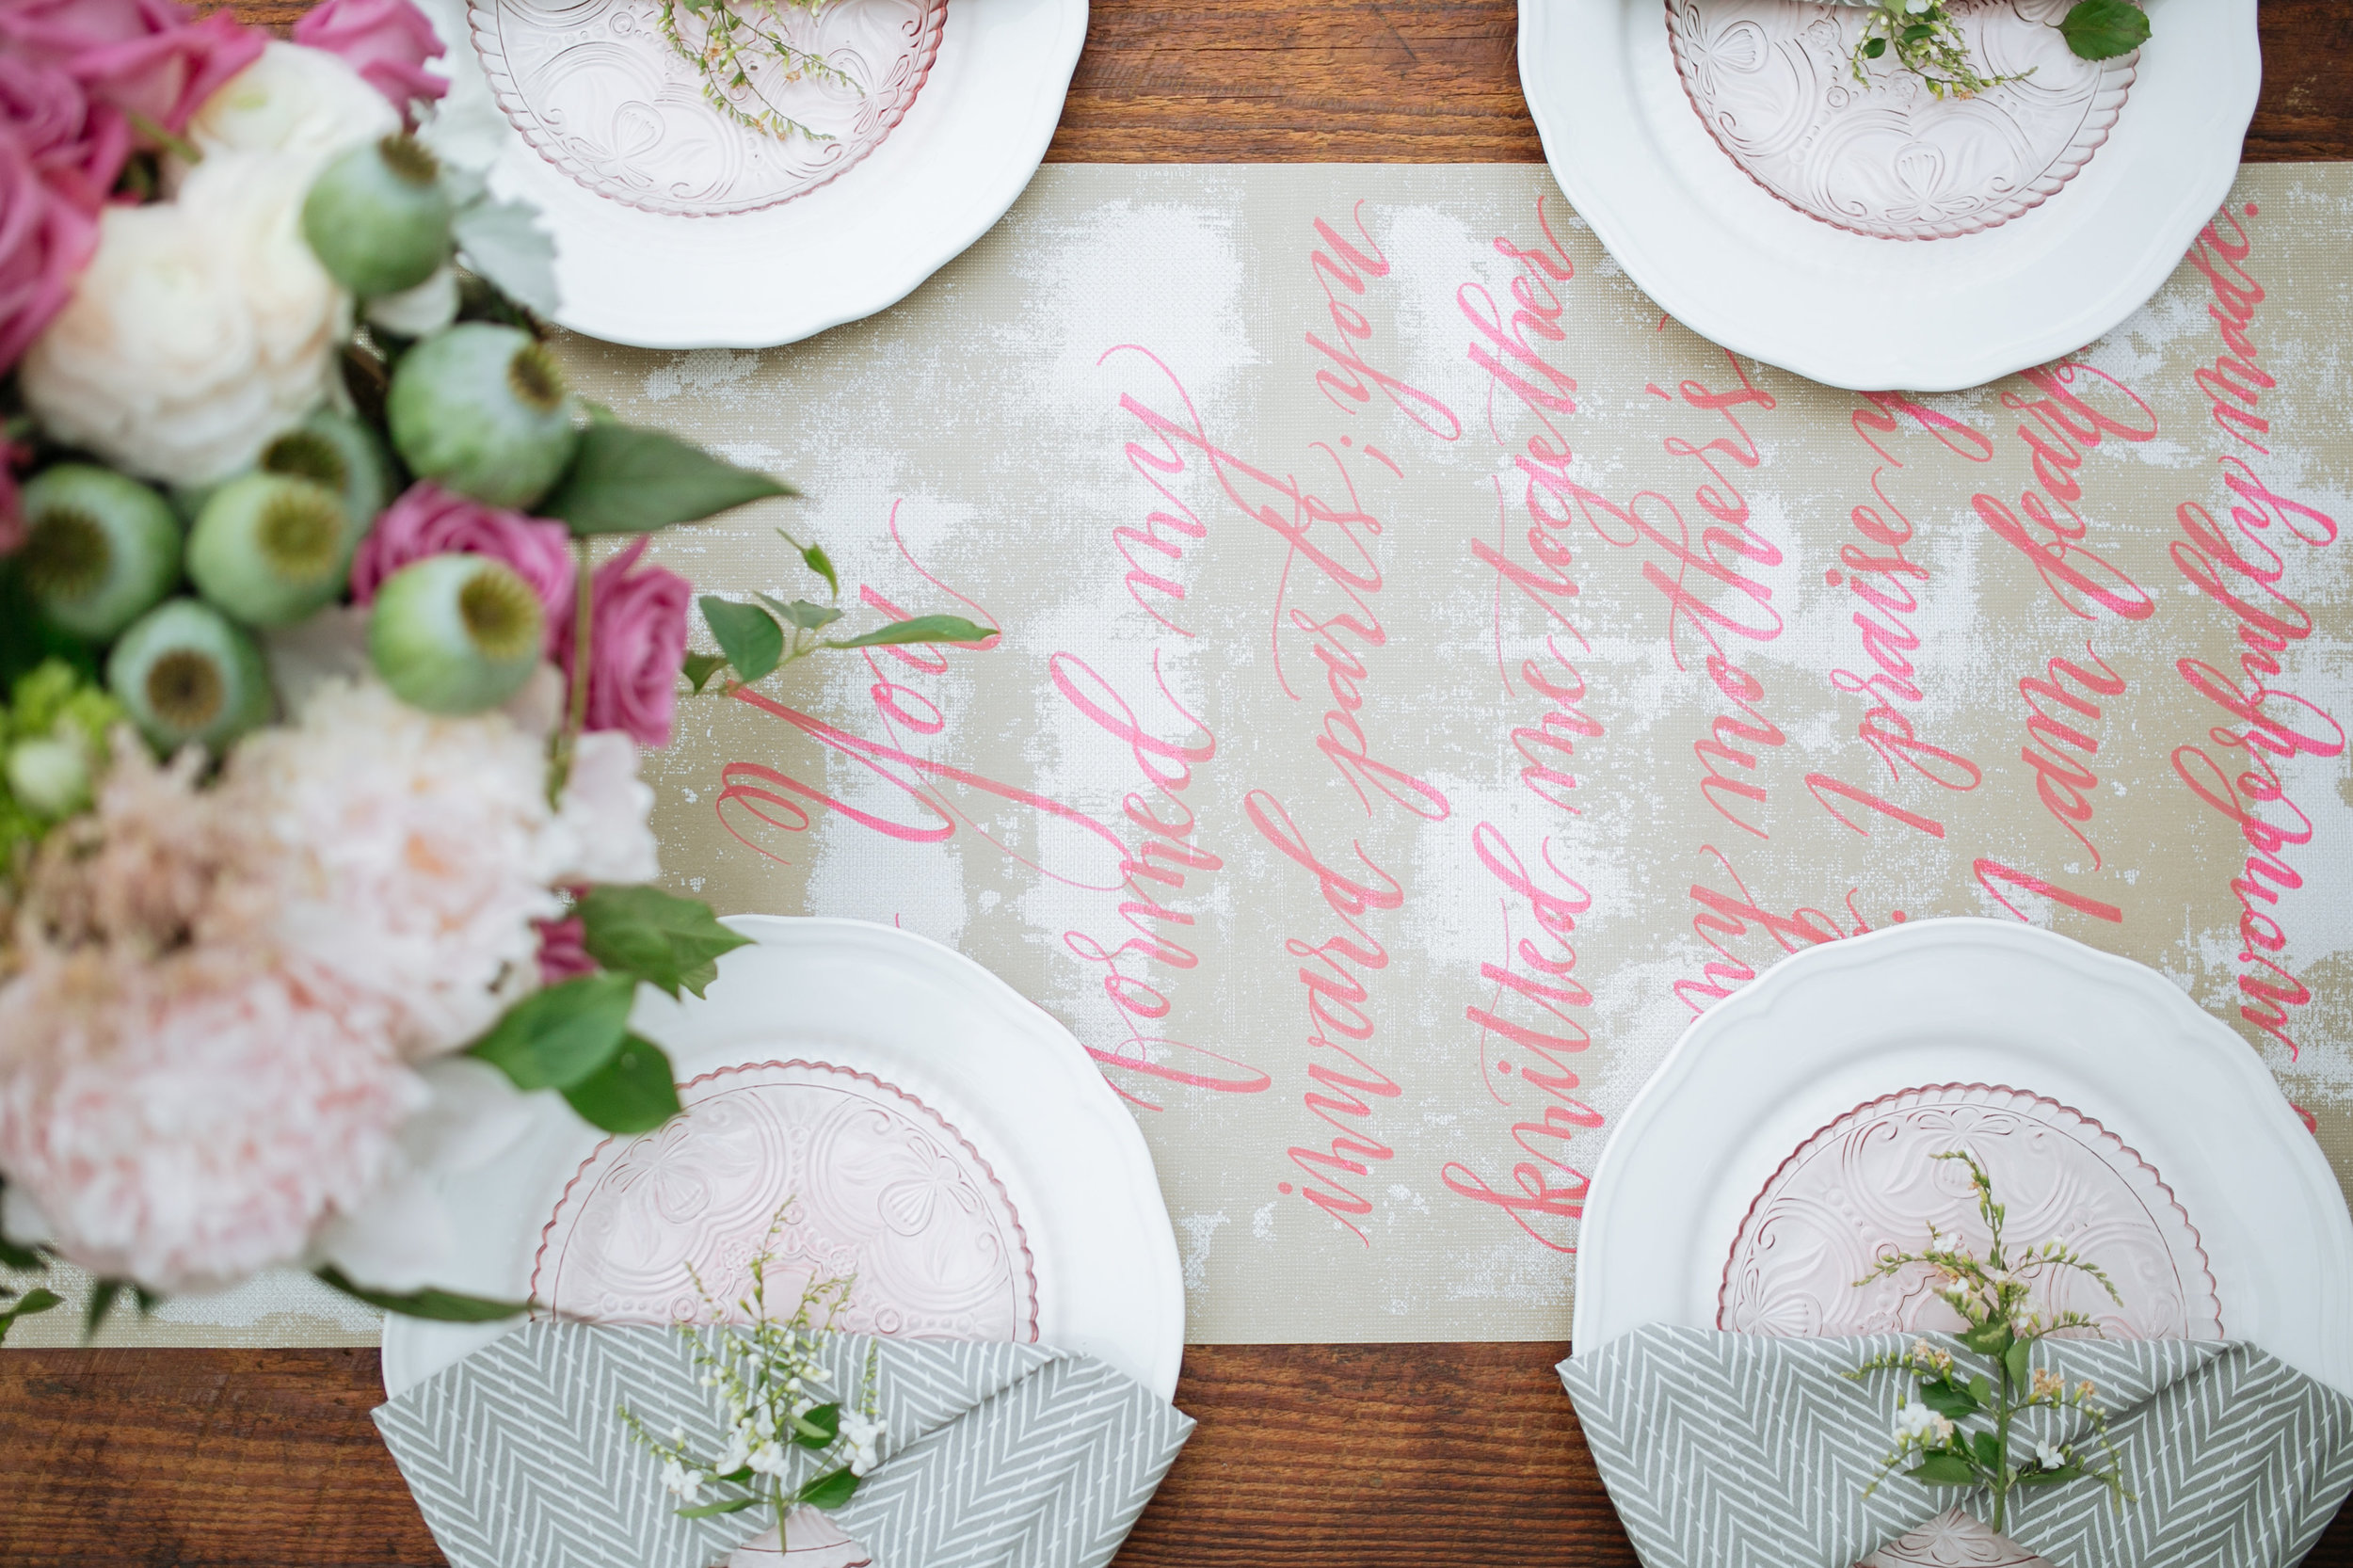 Houston Outdoor Baby Shower | Houston Event Planners | Baby Shower Ideas | Table Runner